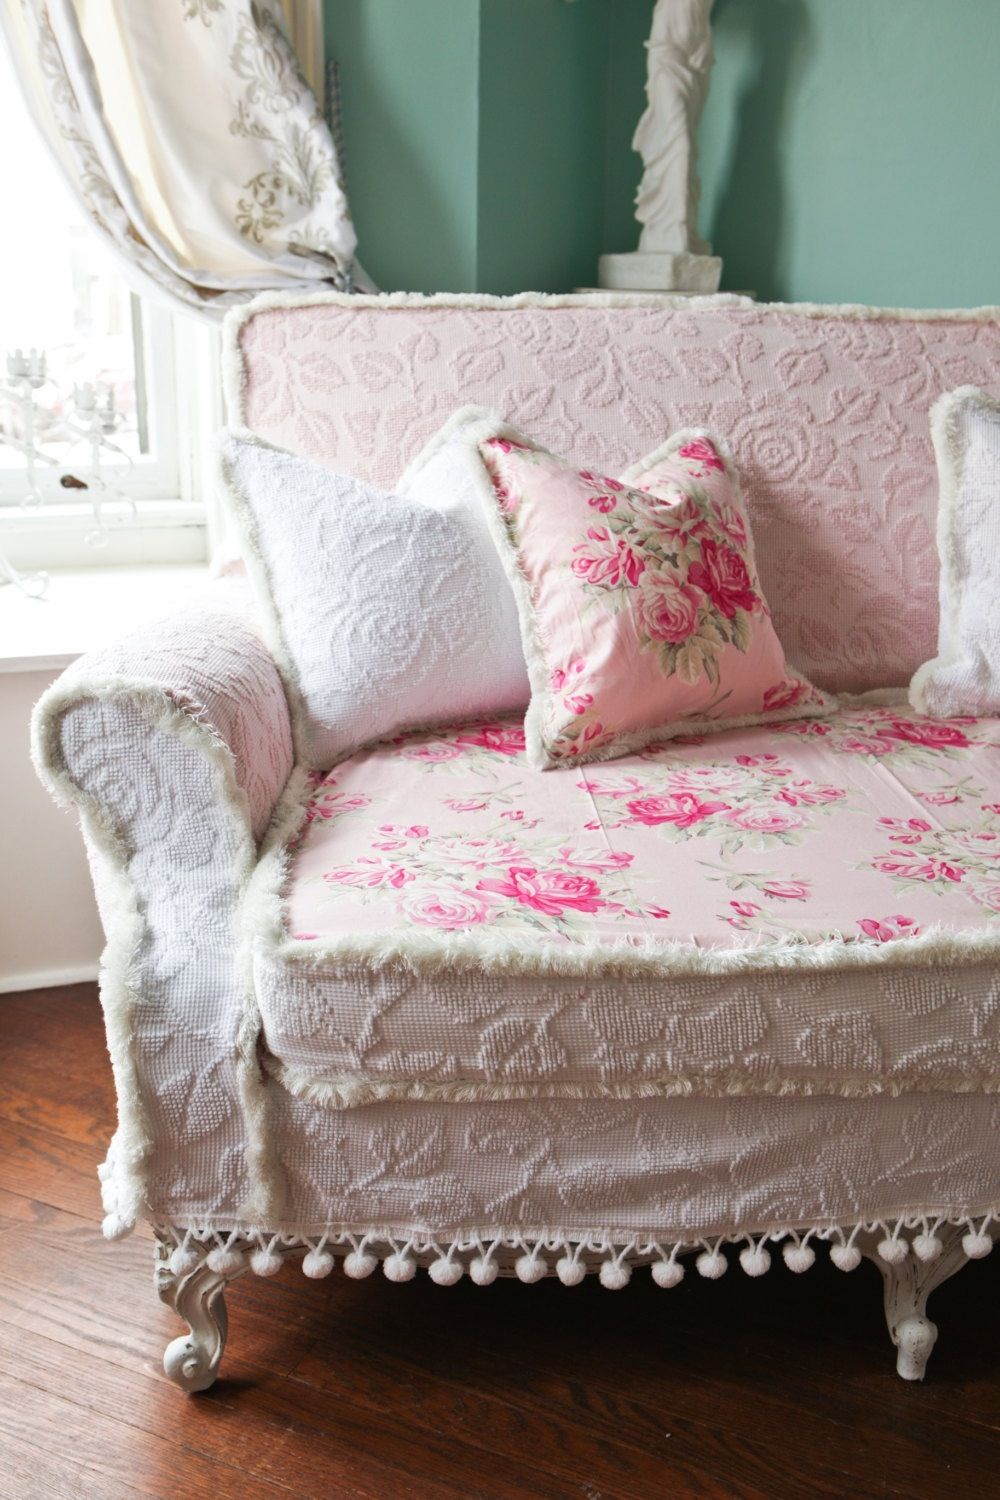 Shabby chic couch sofa cottage white pink antique vintage ...